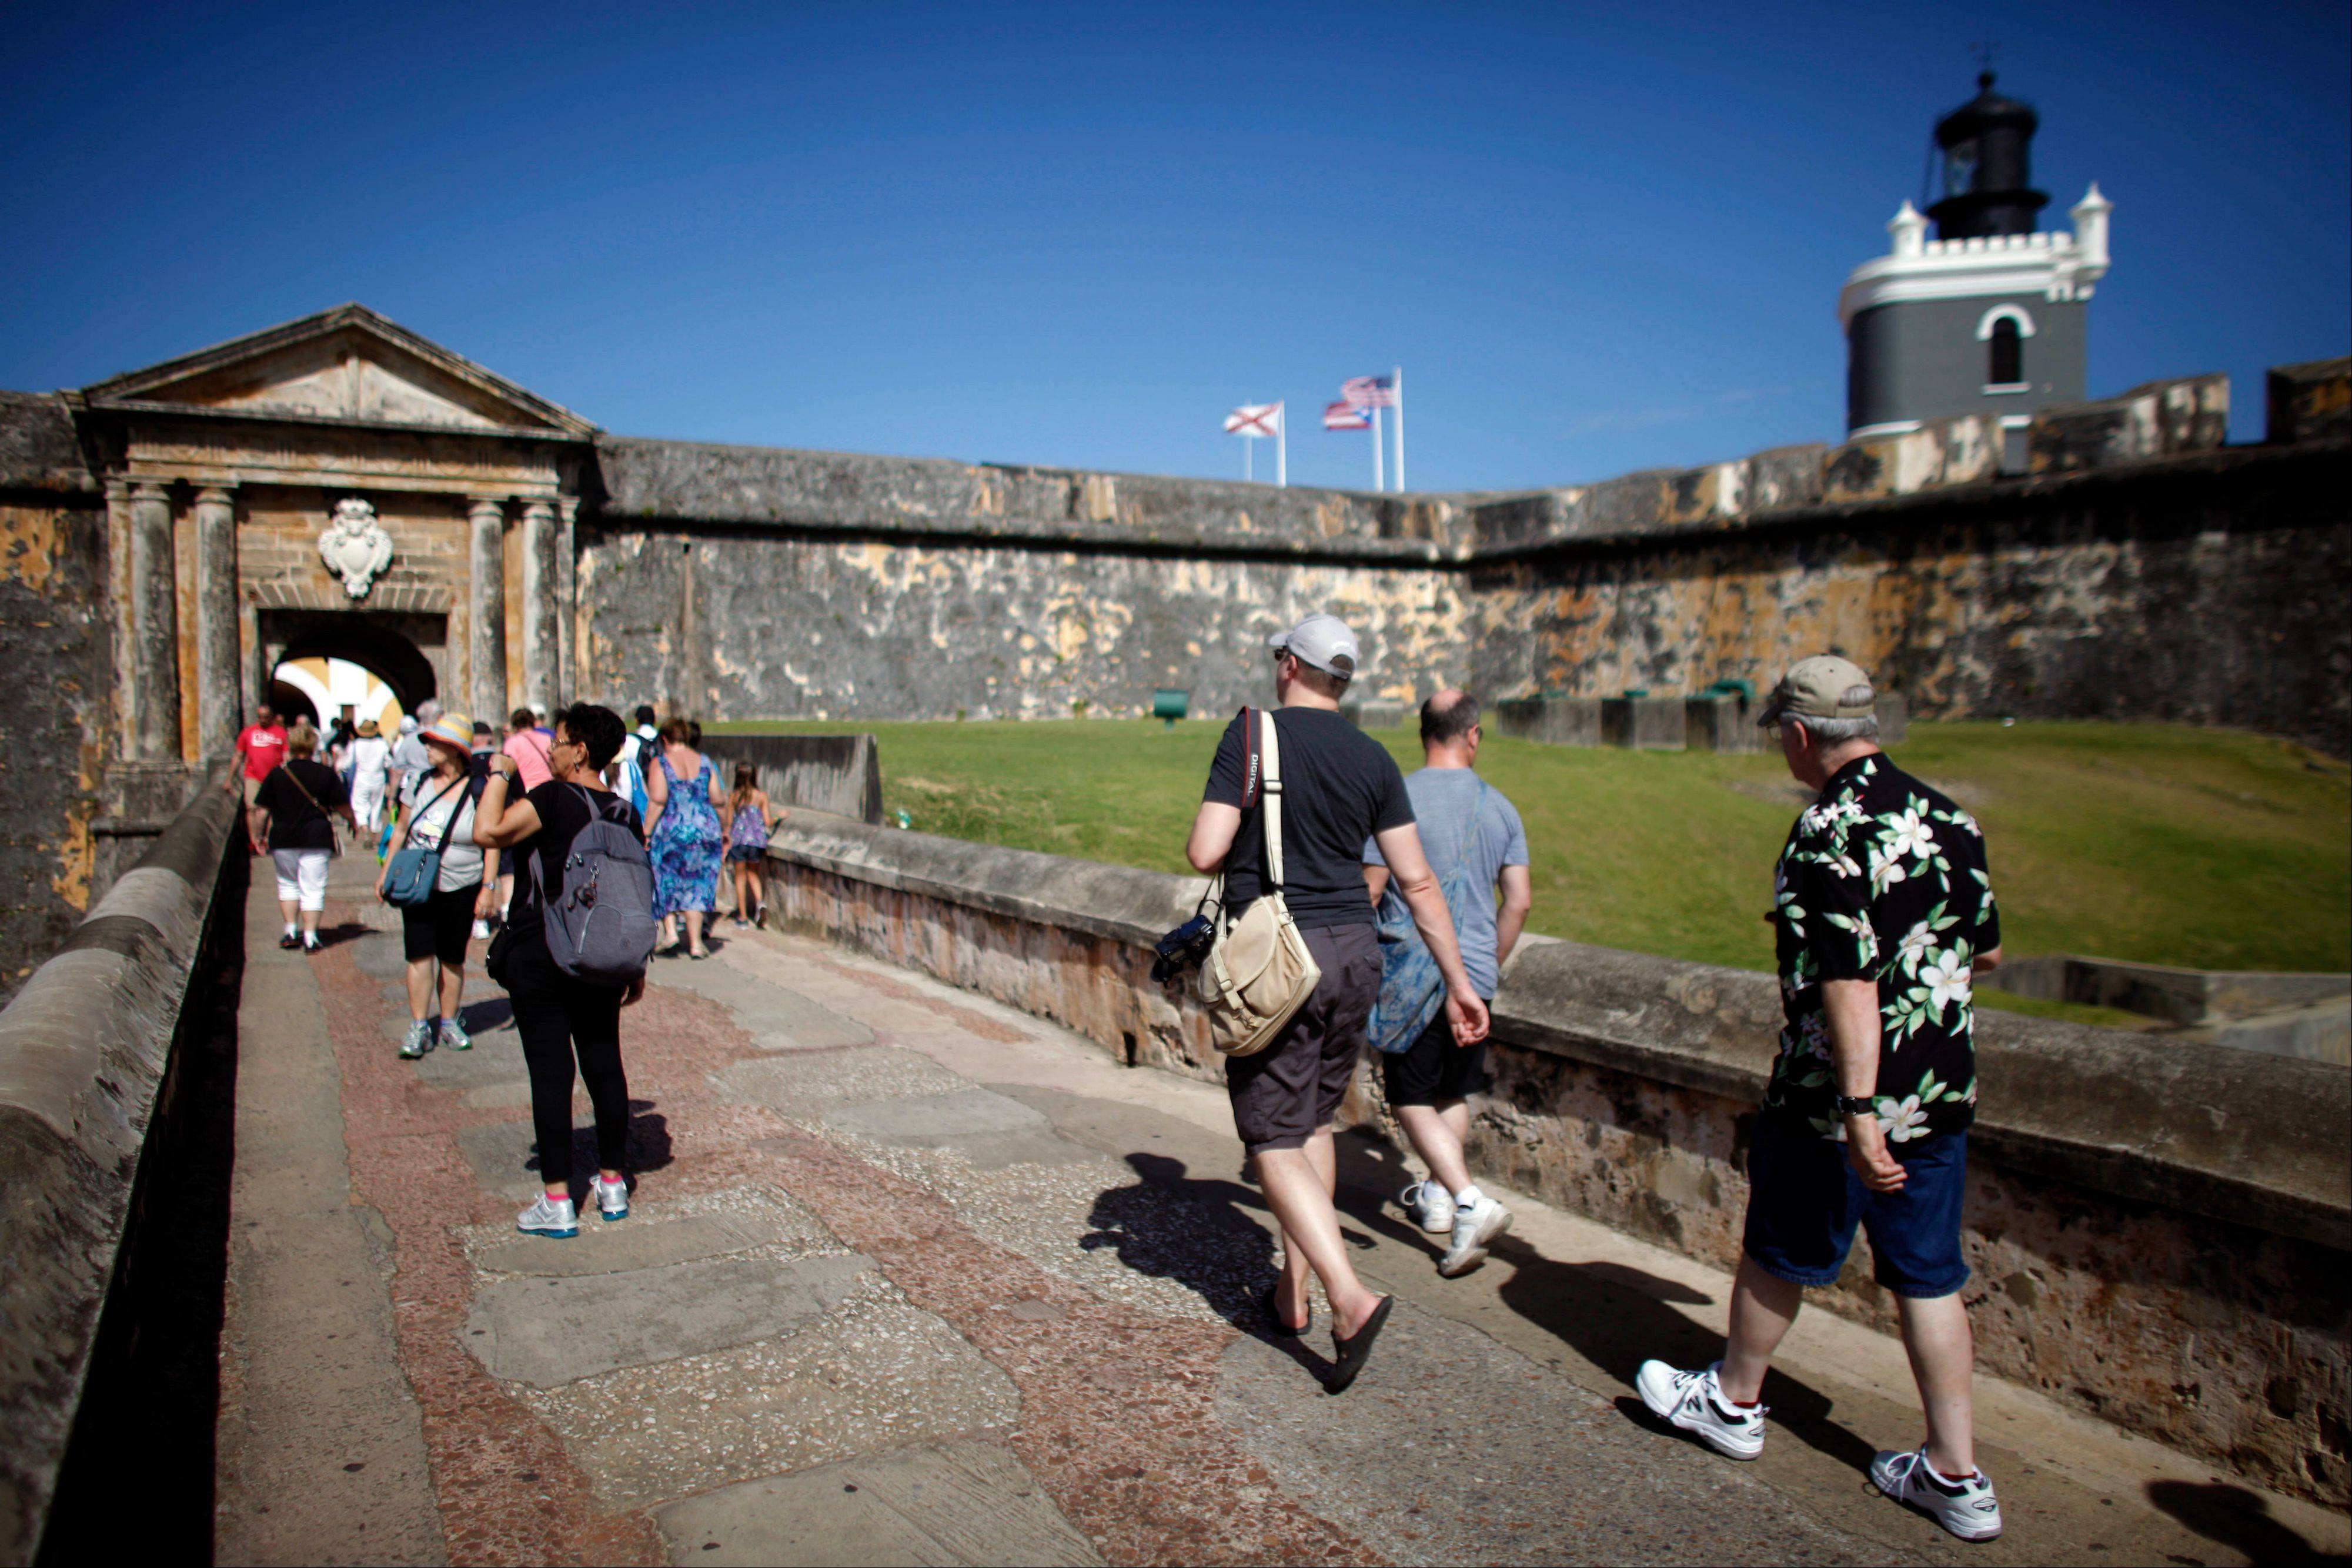 Tourists walk near the 16th-century Spanish fort called El Morro in Old San Juan, Puerto Rico.